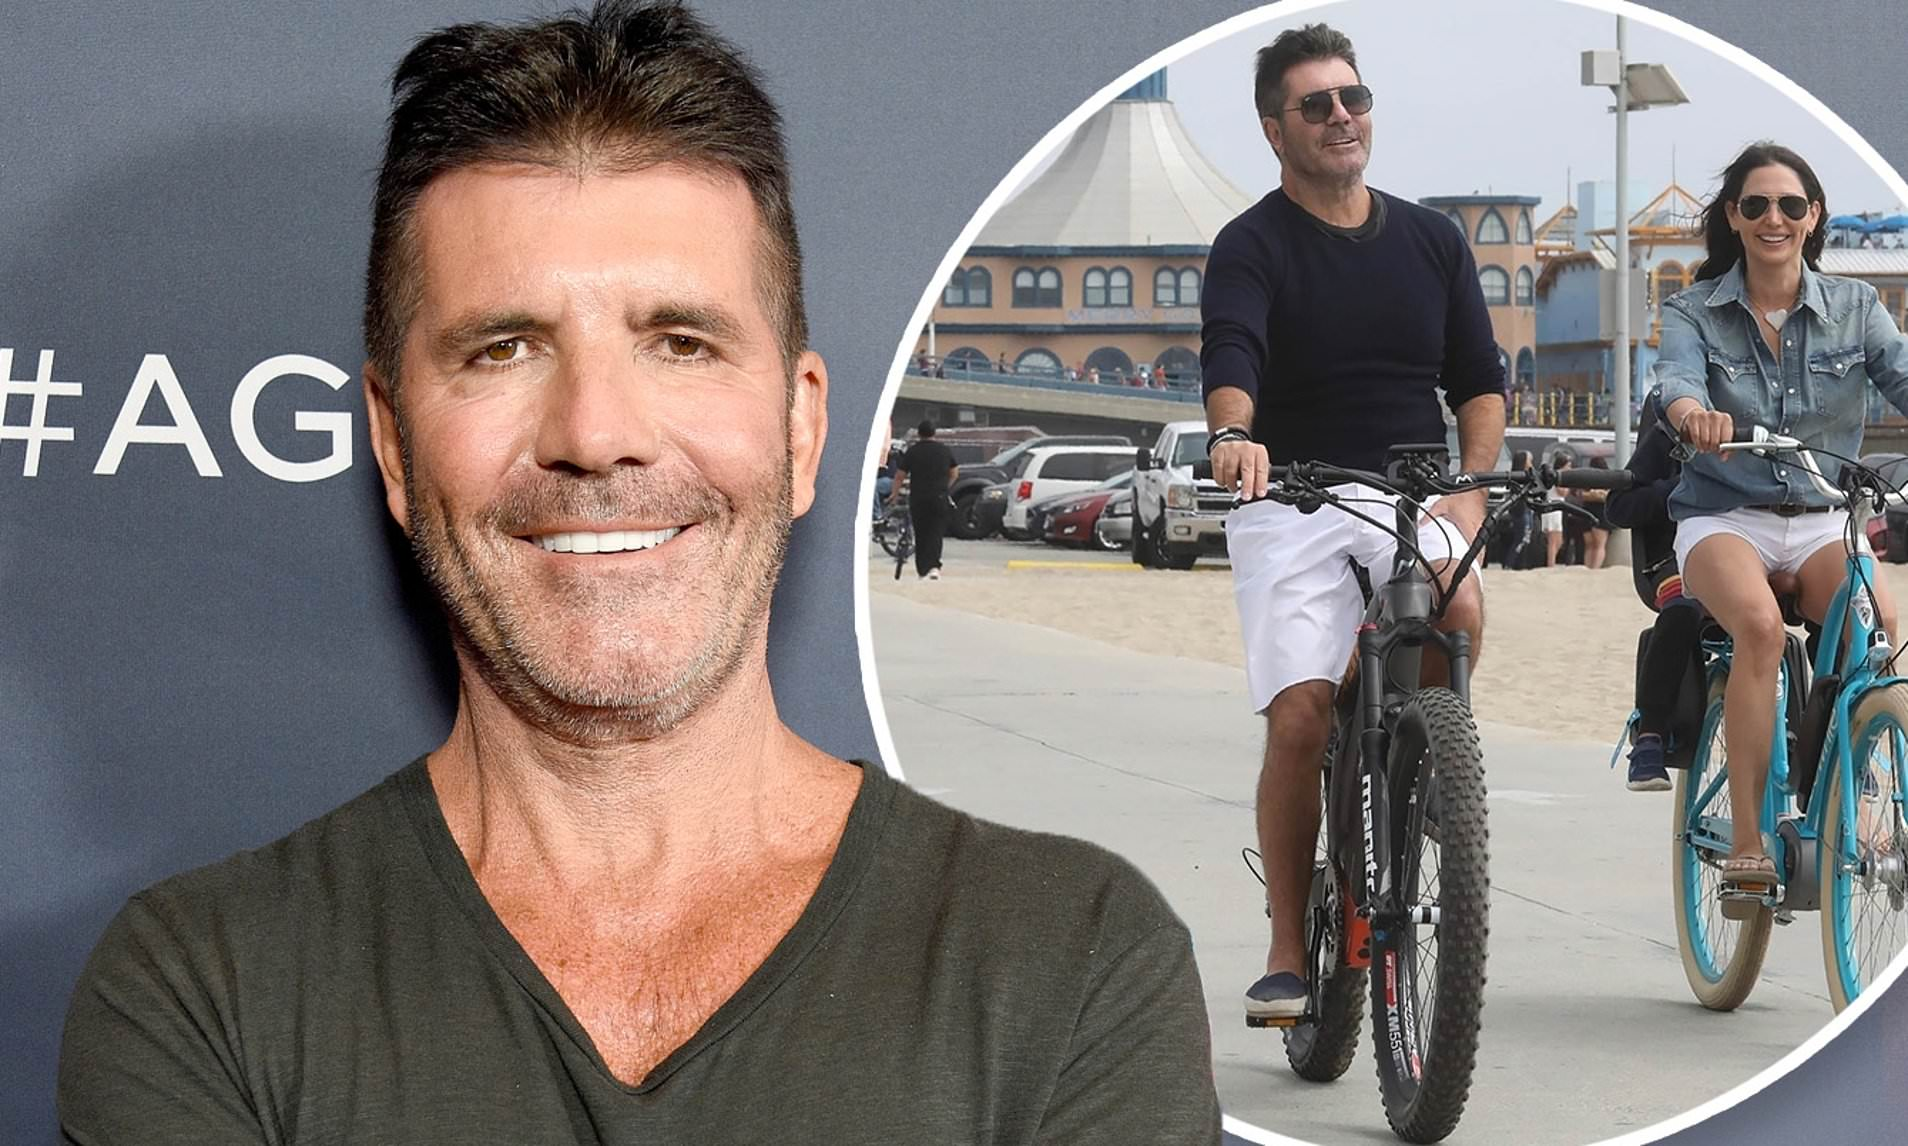 Simon Cowell breaks back falling from electric bike